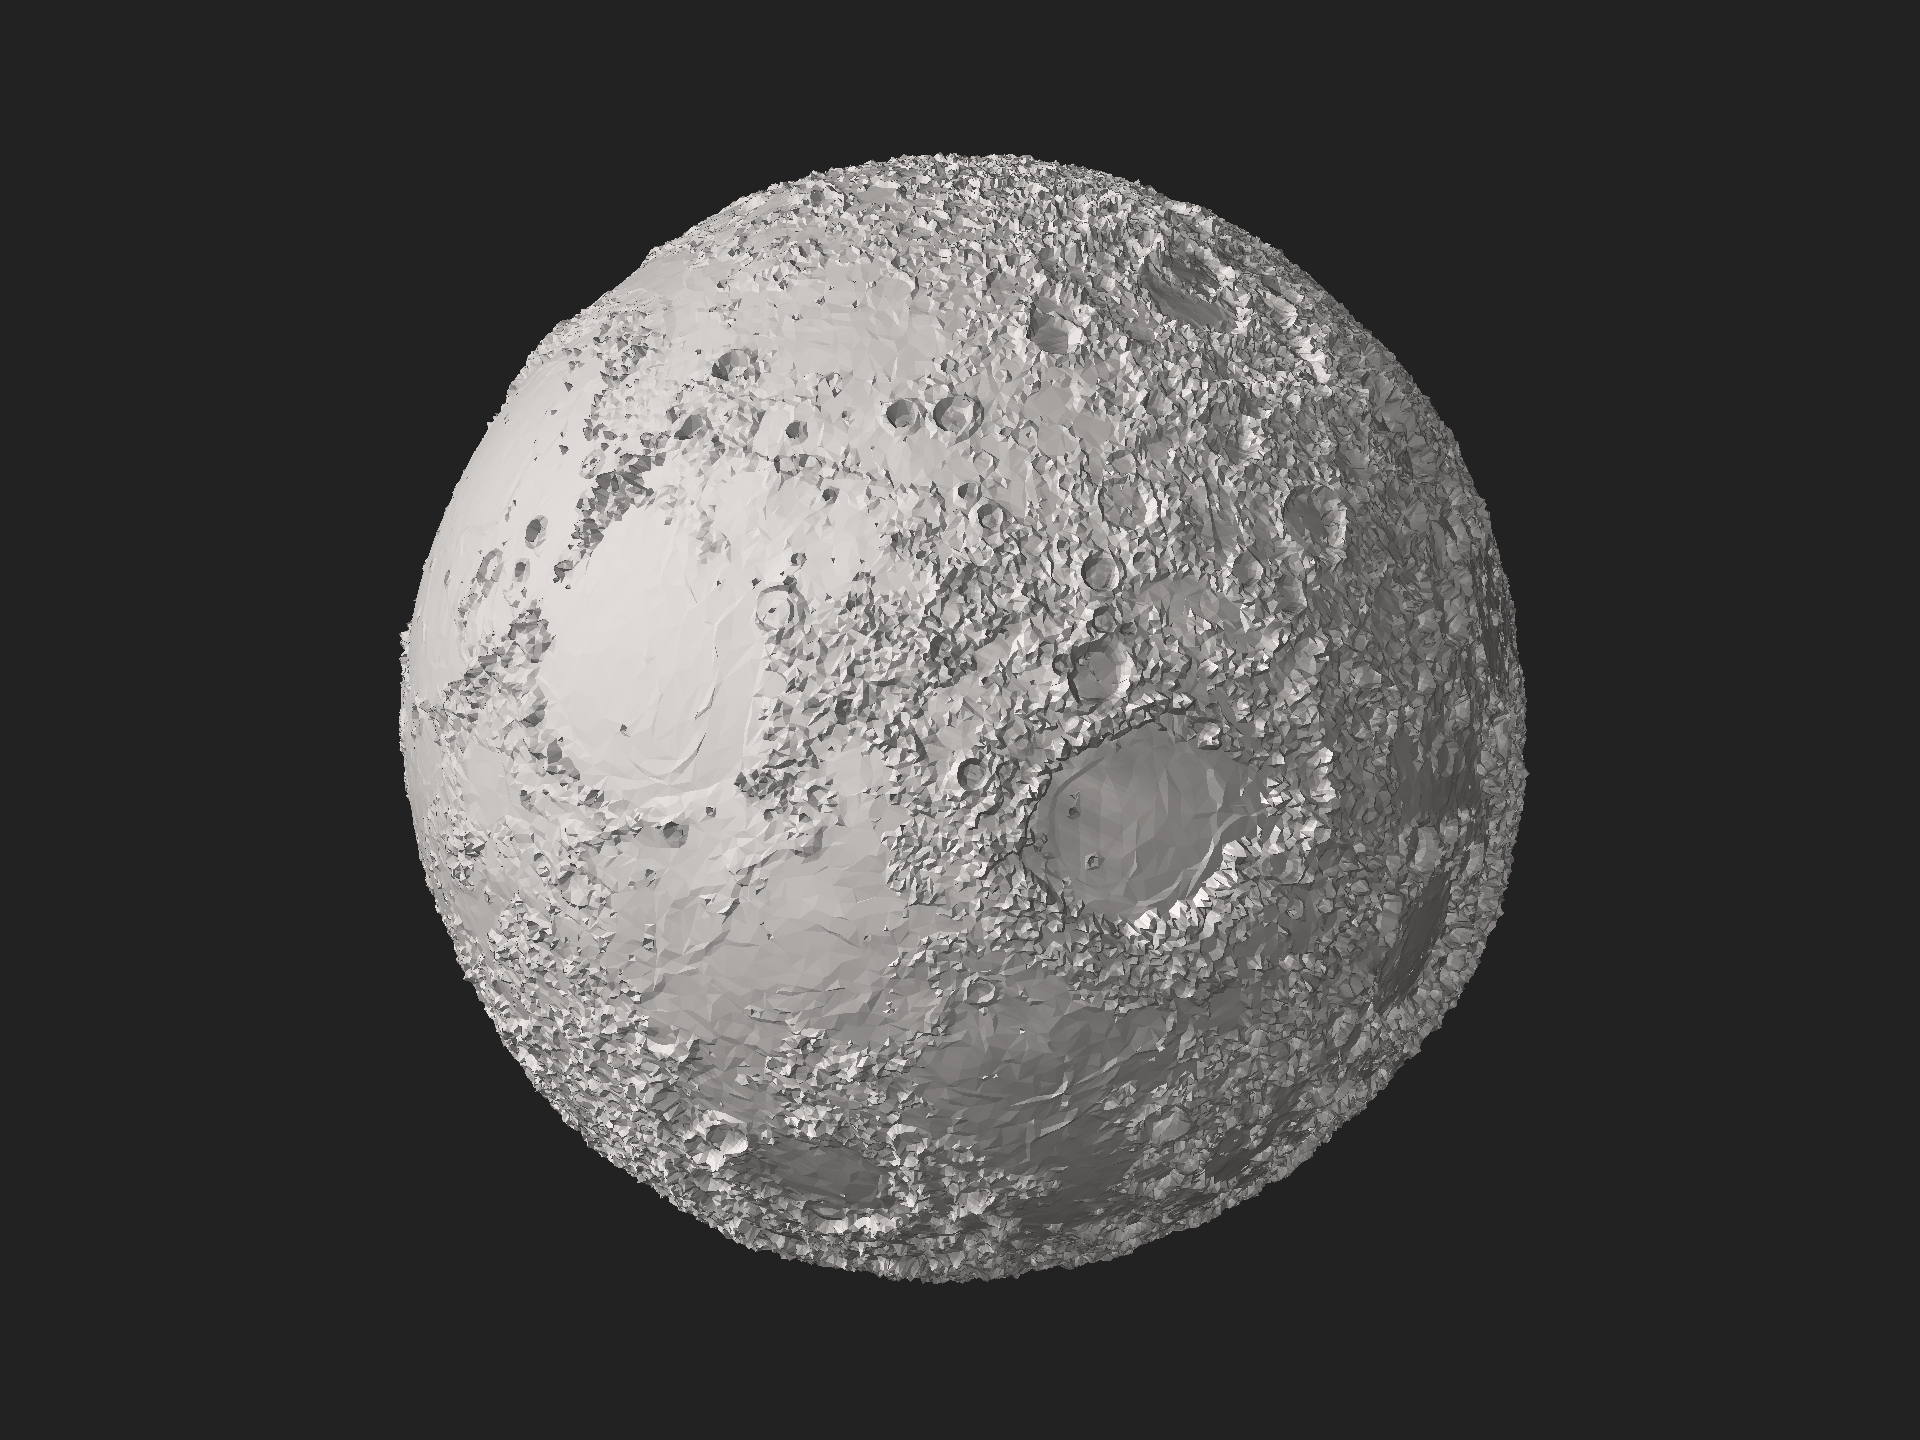 Moon Wikipedia Stl 3d Model Of The Moon With 10 Elevation Exaggeration Rendered With Data From The Lunar Orbiter Laser Altimeter Of Topography Moon Lunar